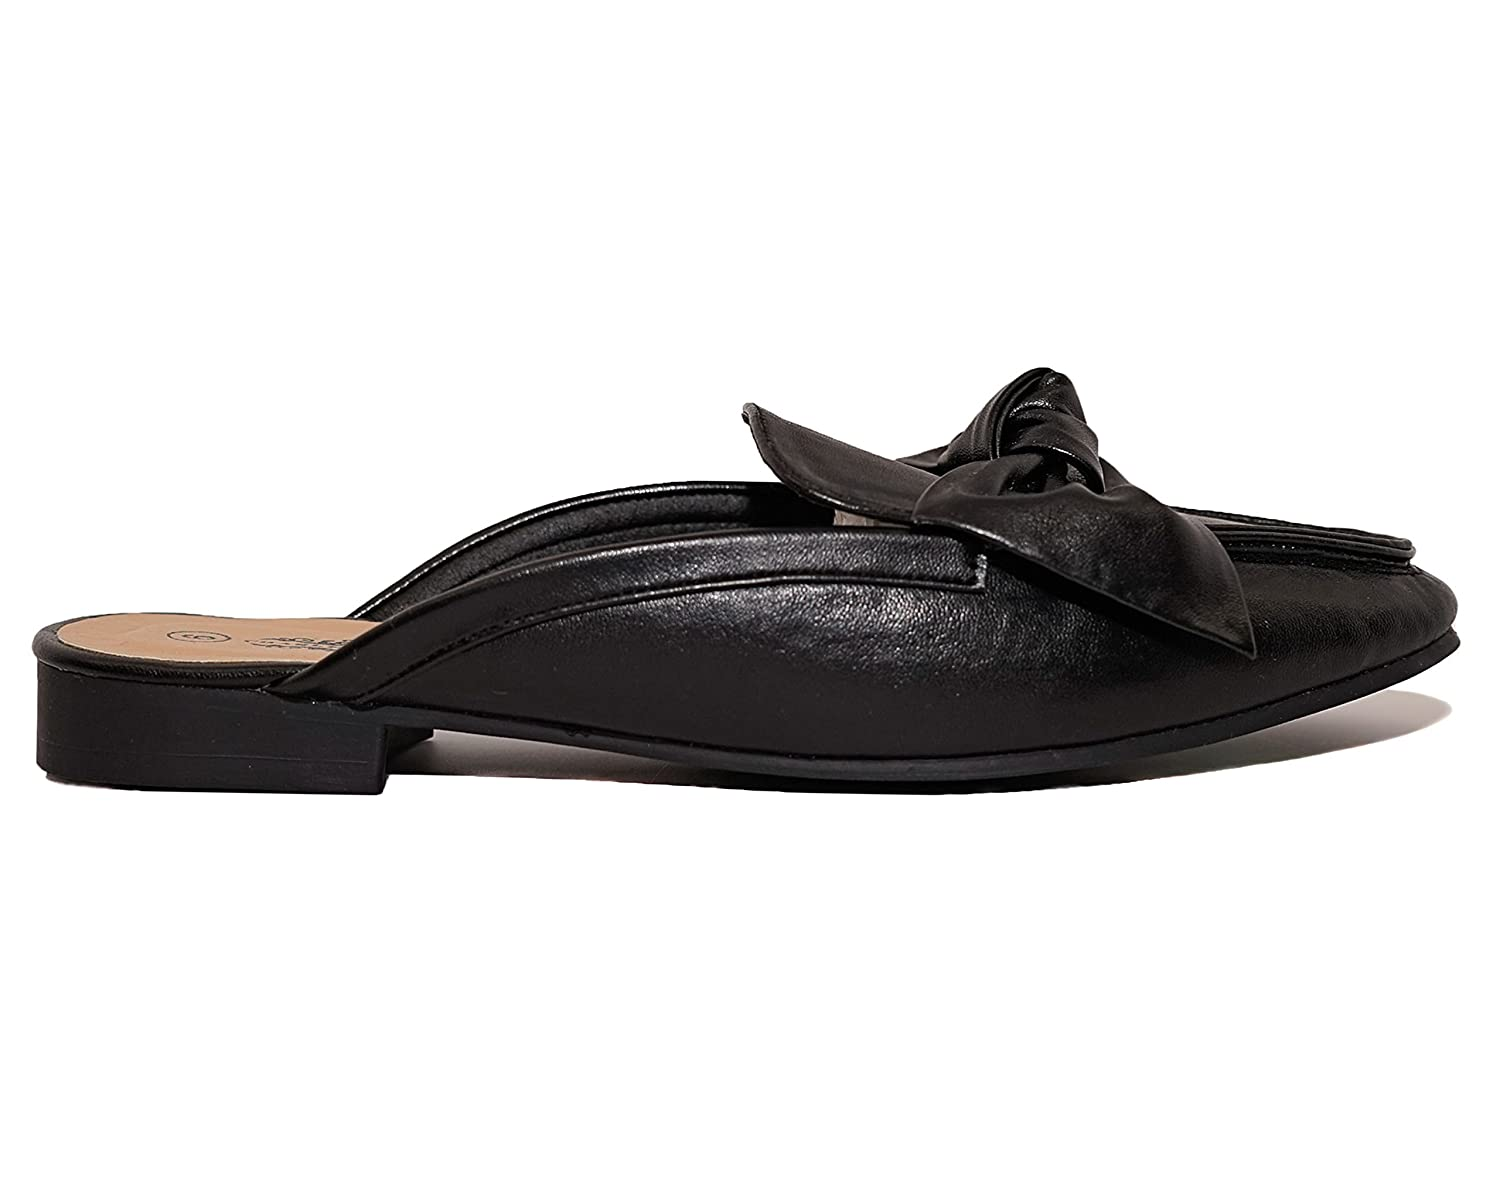 Charles Albert Women's Knotted Bow Mules Backless Slip On Loafers